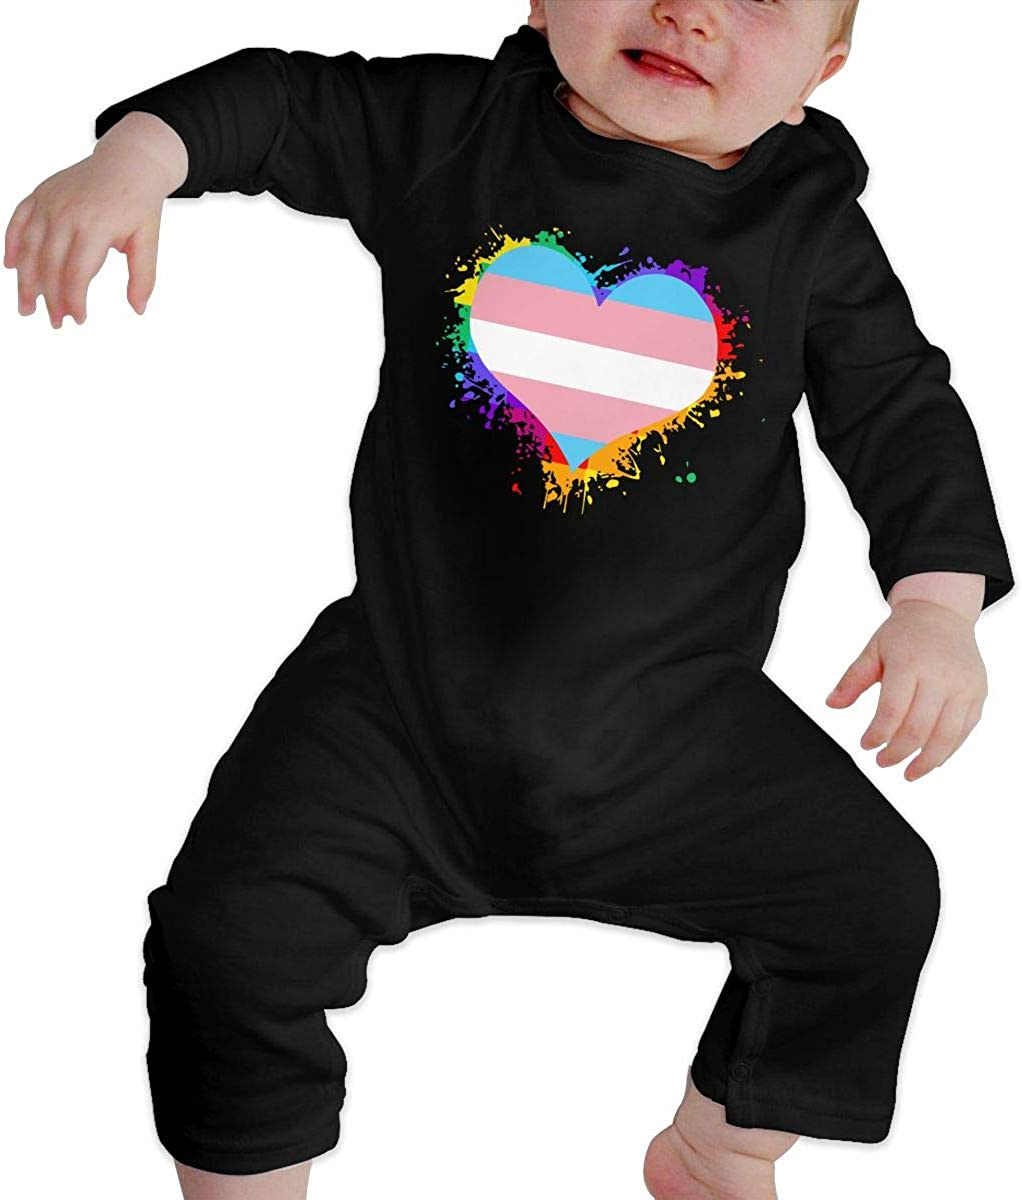 BKNGDG8Q Toddler Baby Boy Romper Jumpsuit Transgender Flag Heart Organic One-Piece Bodysuits Coverall Outfits